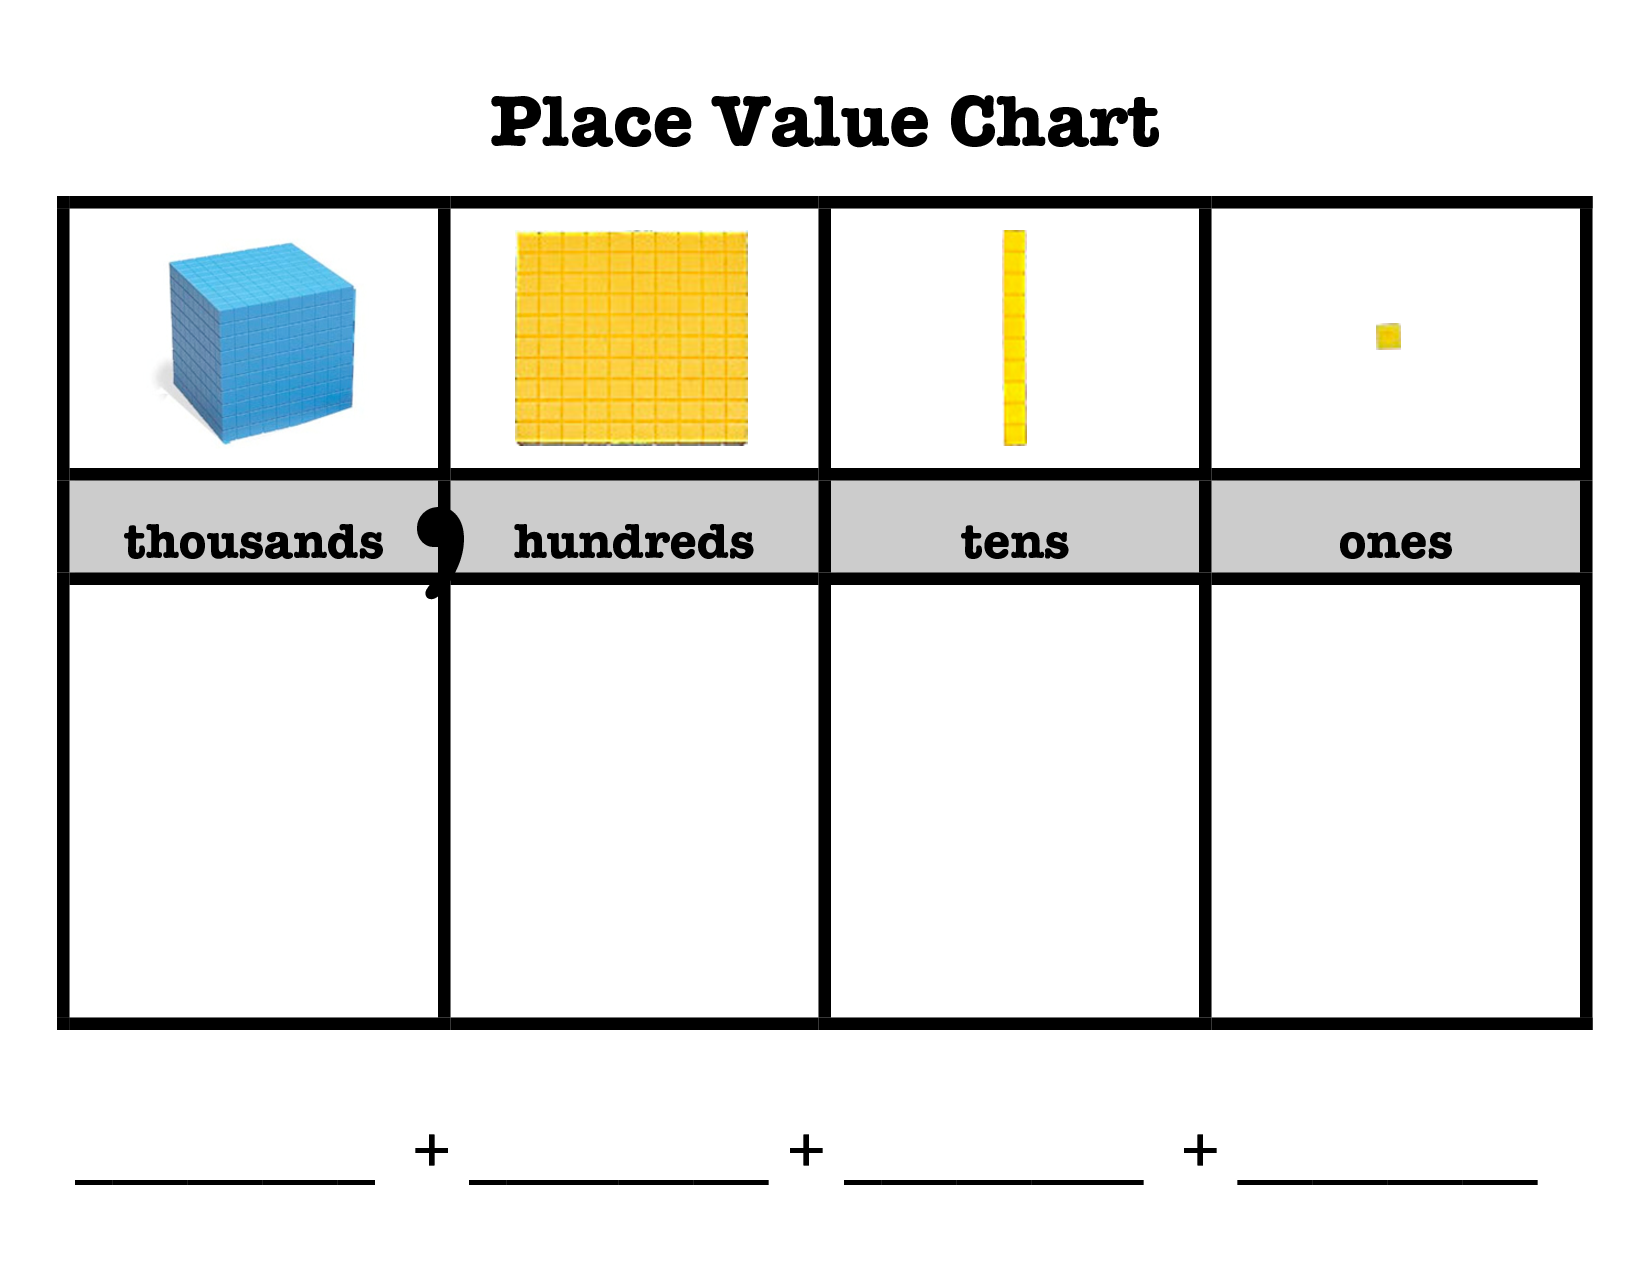 hight resolution of thousands place value chart